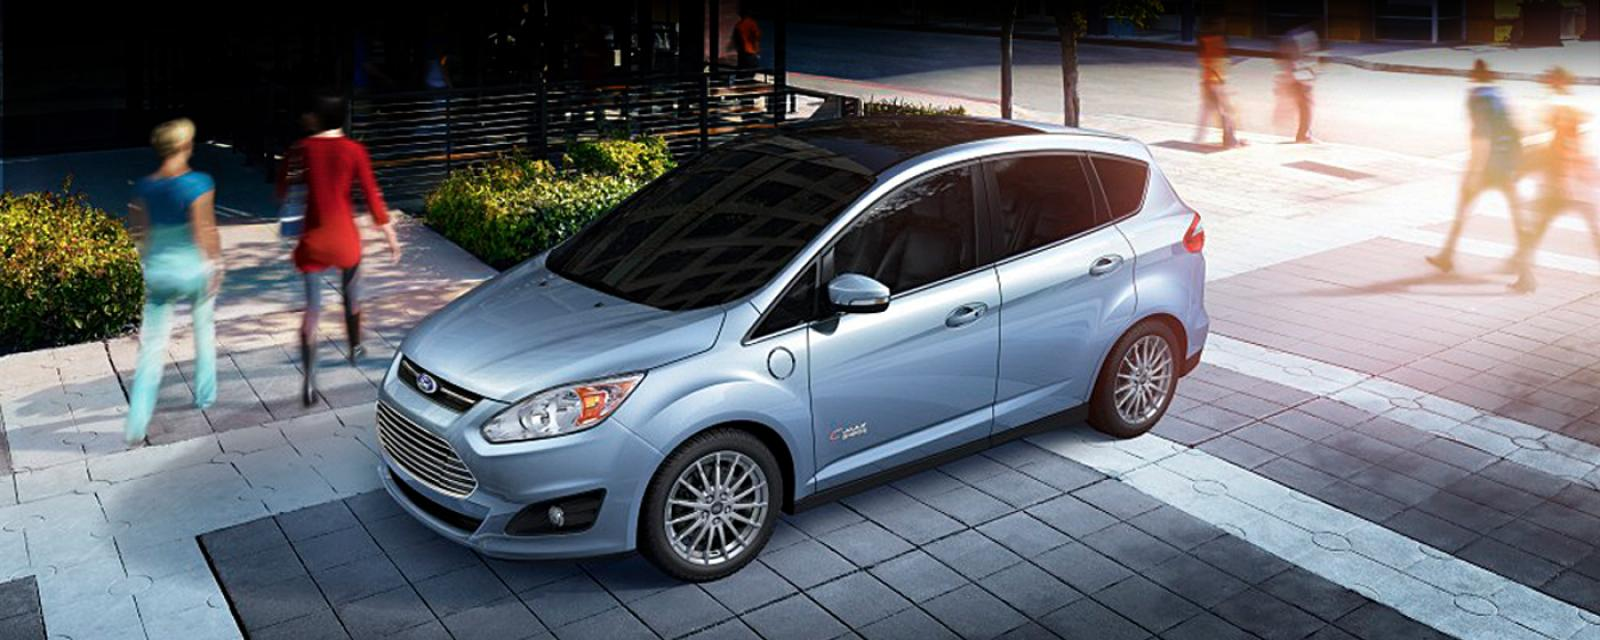 2013 ford c max energi information and photos zombiedrive. Black Bedroom Furniture Sets. Home Design Ideas